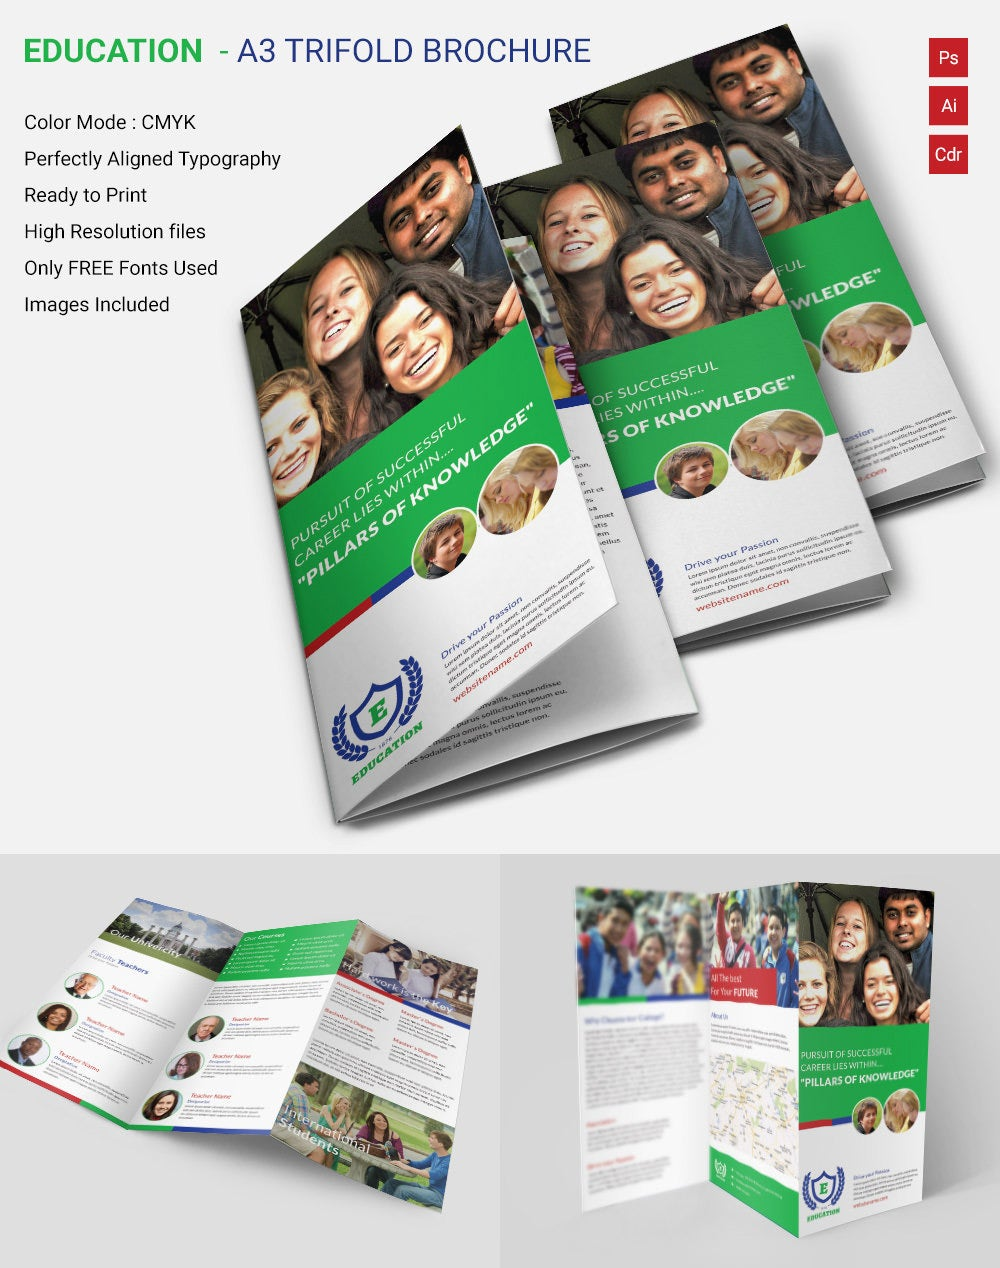 Tri fold brochure template 45 free word pdf psd eps for Education brochure templates